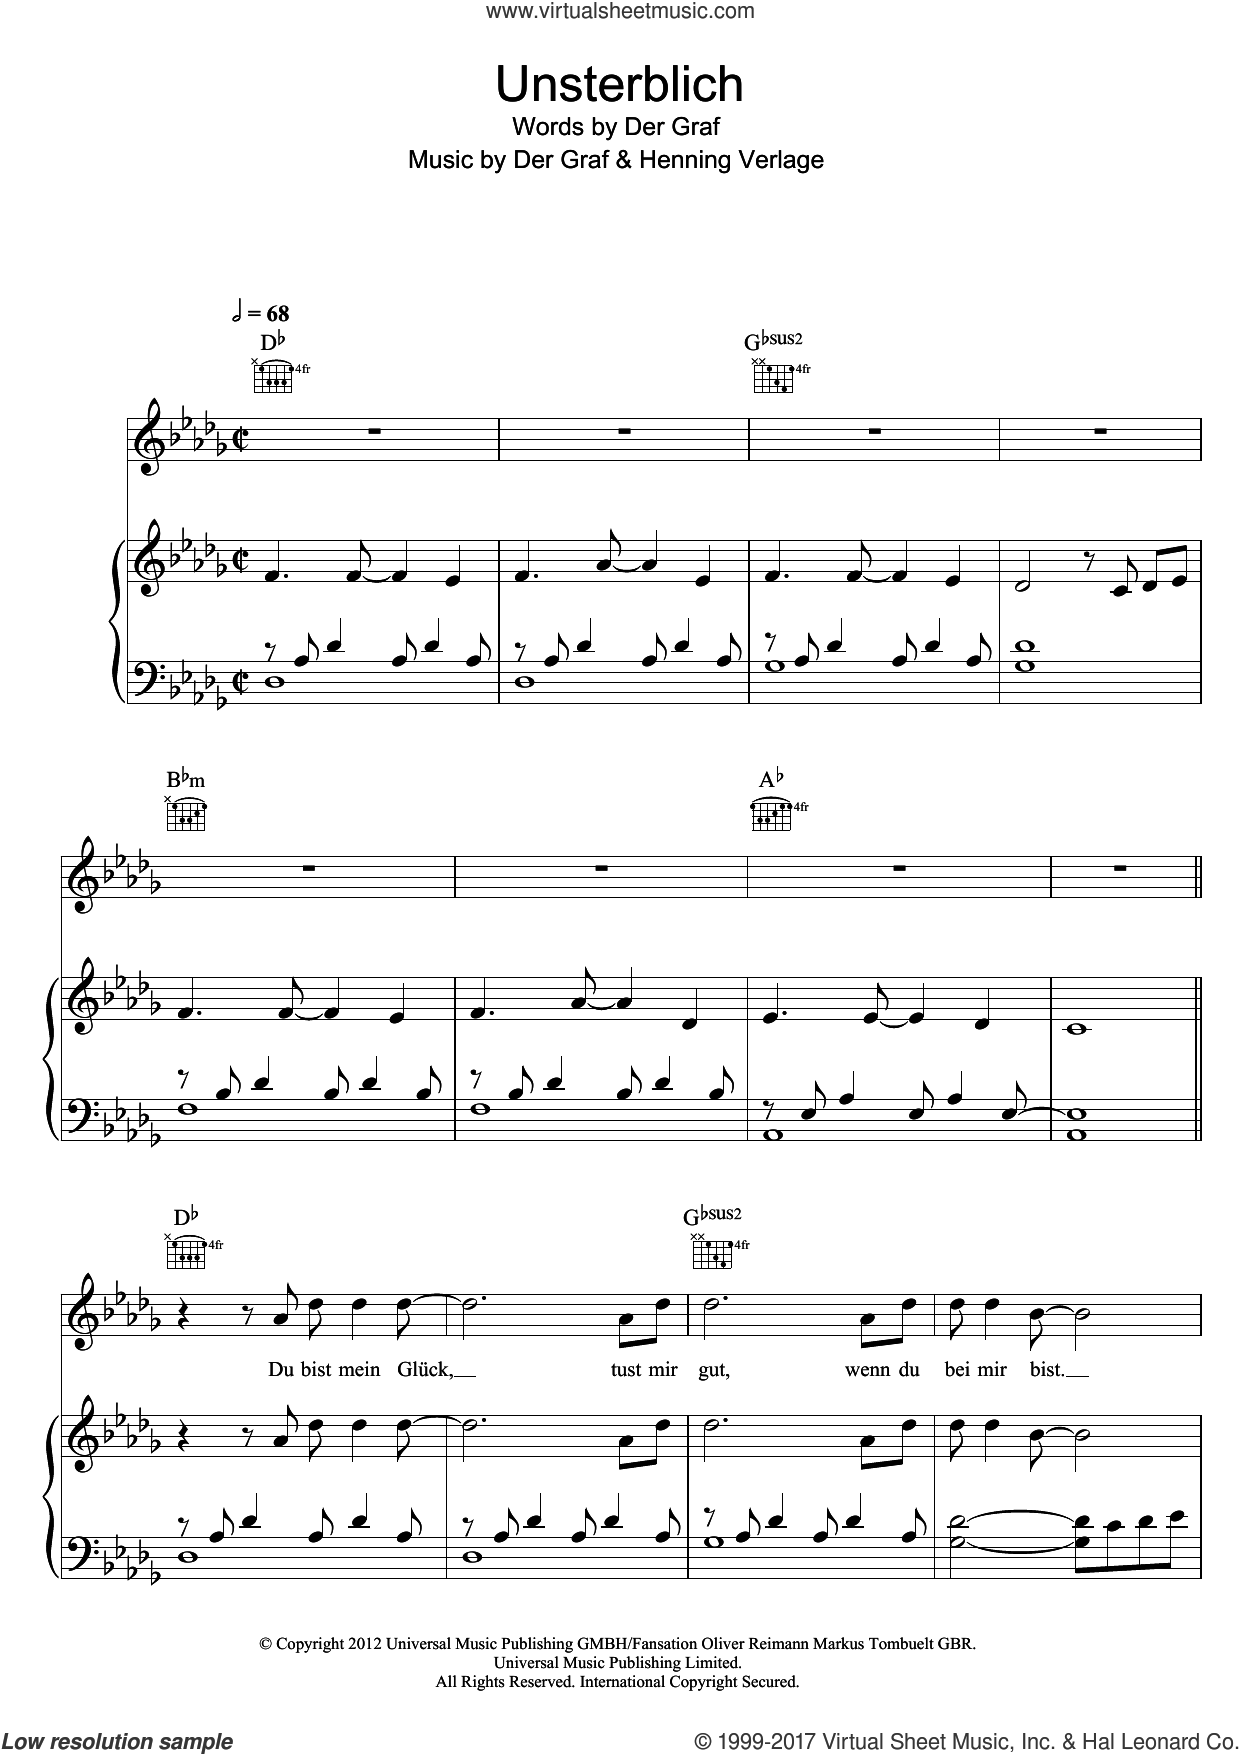 Unsterblich sheet music for voice, piano or guitar by Unheilig. Score Image Preview.